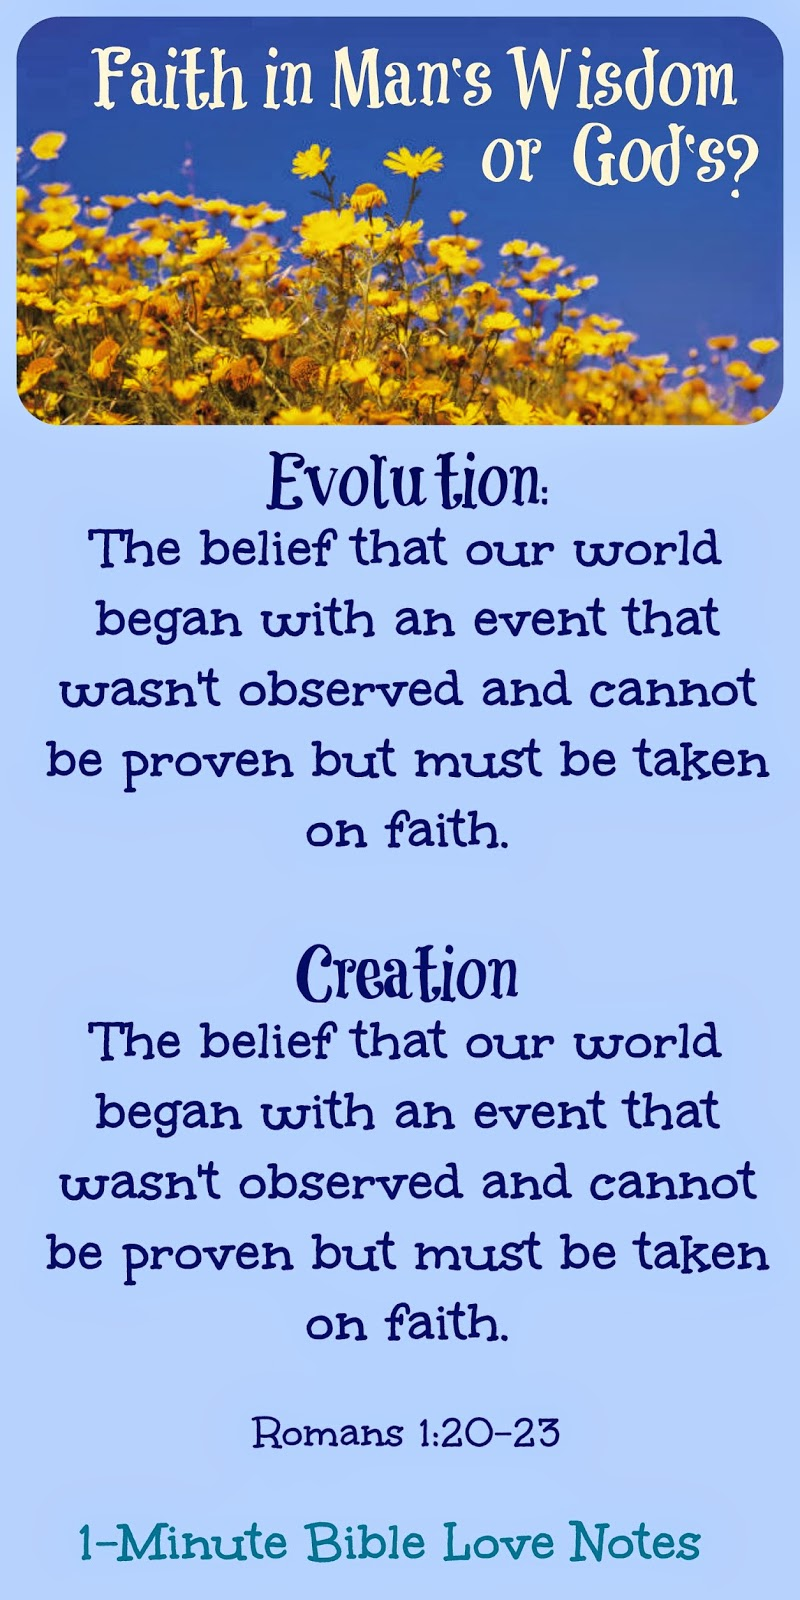 creation versus evolution, evolution is faith-based, faith in man or God